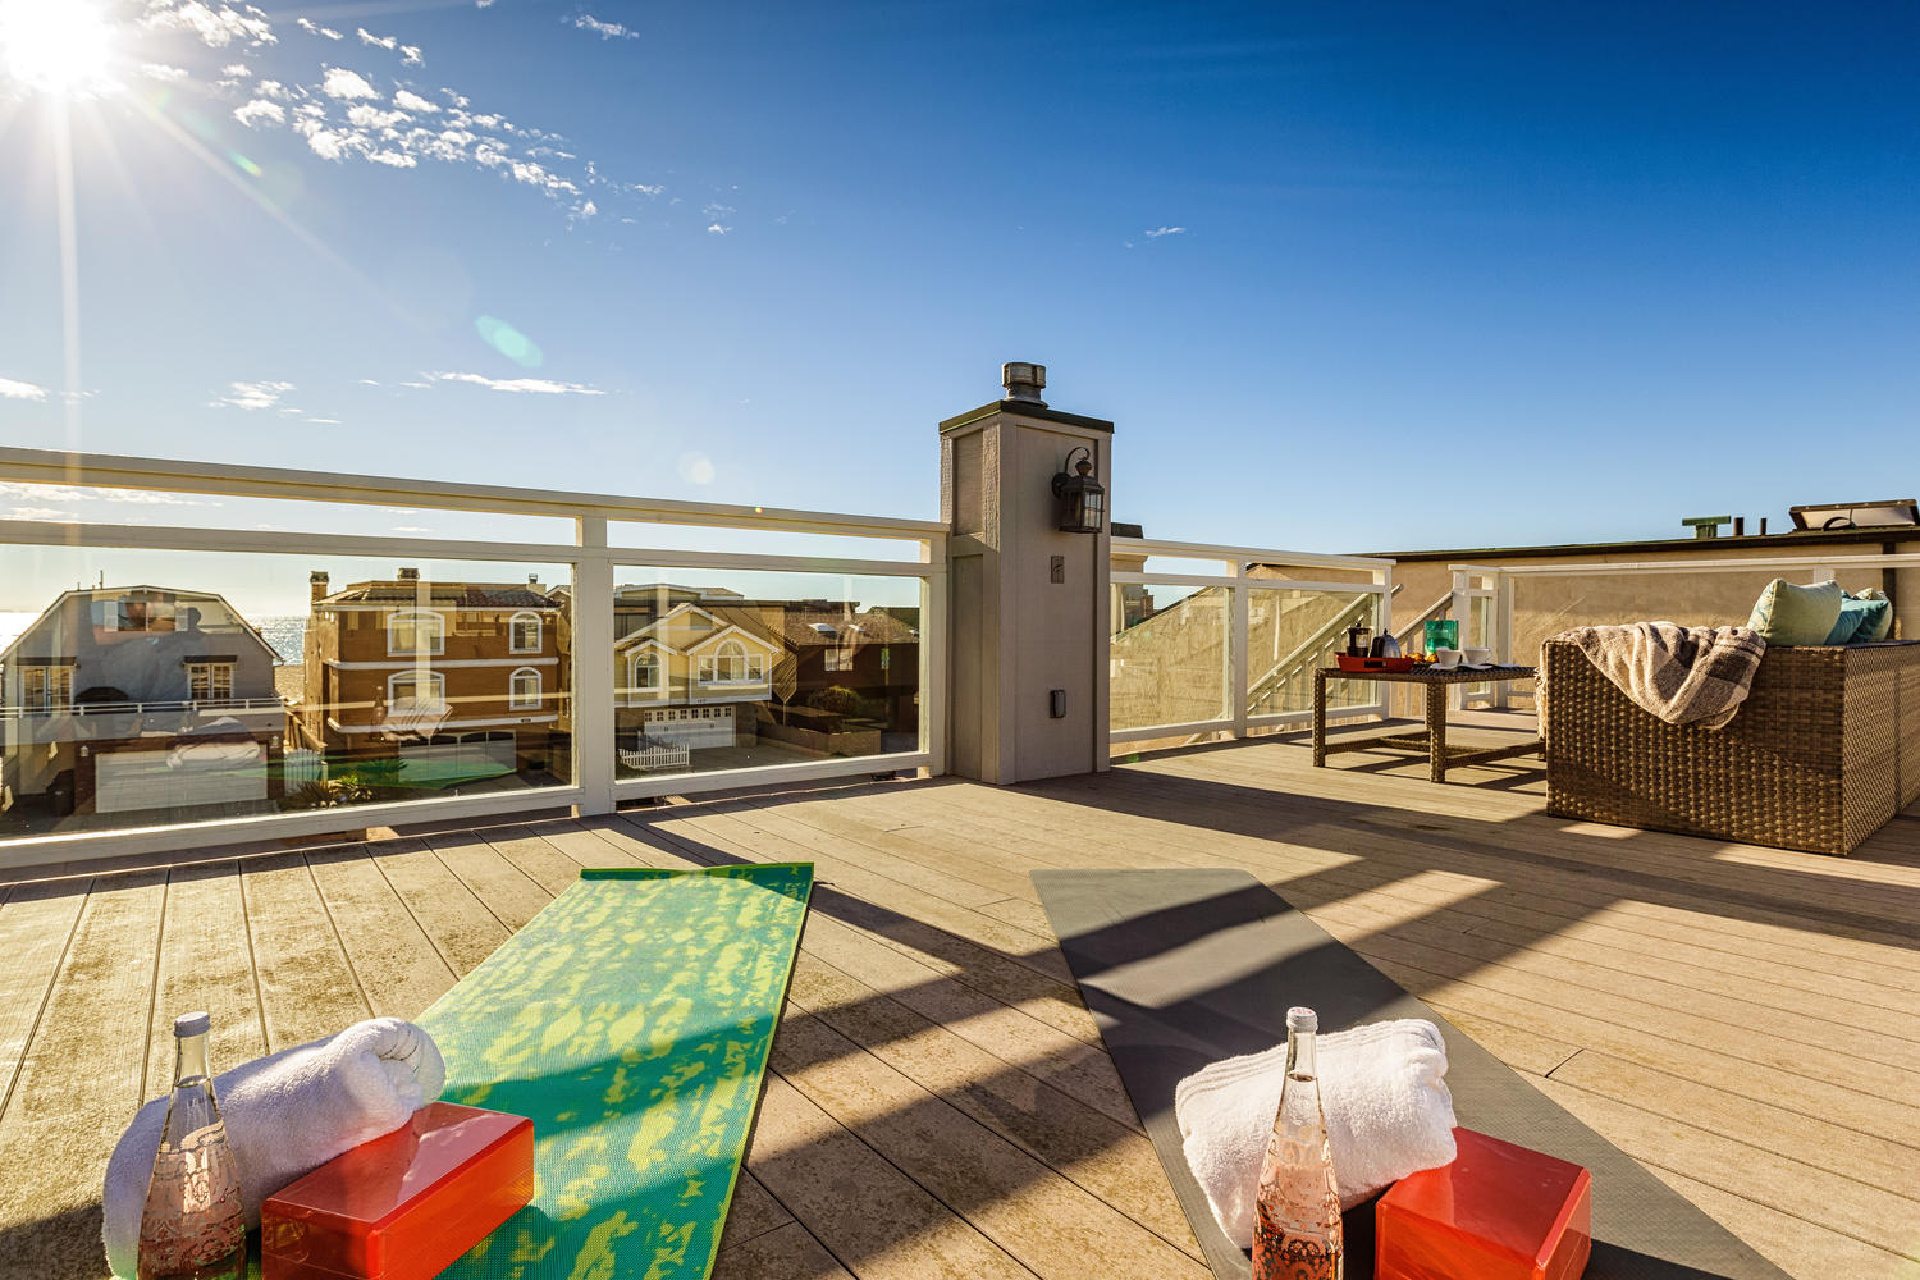 http://www.addressrealestate.com/media/images/blogs/38/2/b_22-1408-ocean-dr-oxnard-ca-93035-mls-size-022-16-rooftop-patio-1500x1000-72dpi.jpg